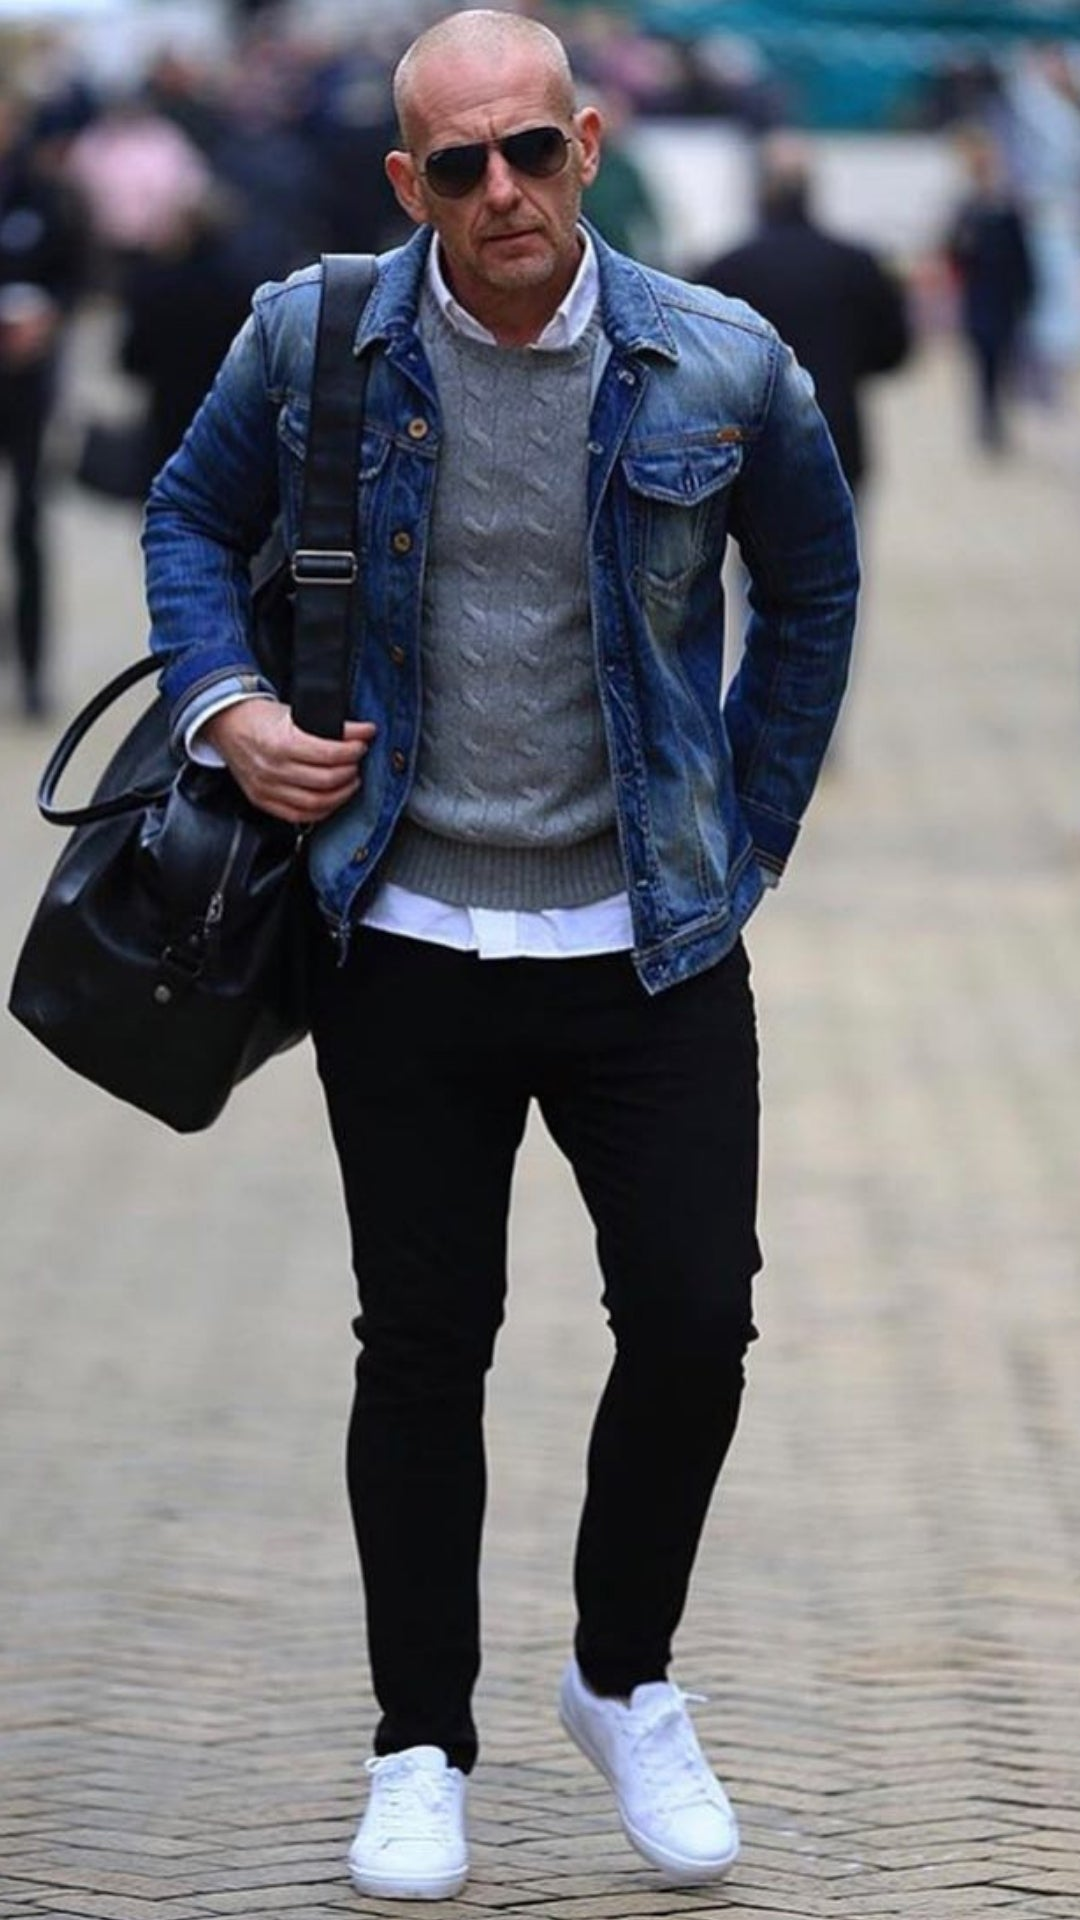 Top 5 Street Style Looks For Bald Men - LIFESTYLE BY PS